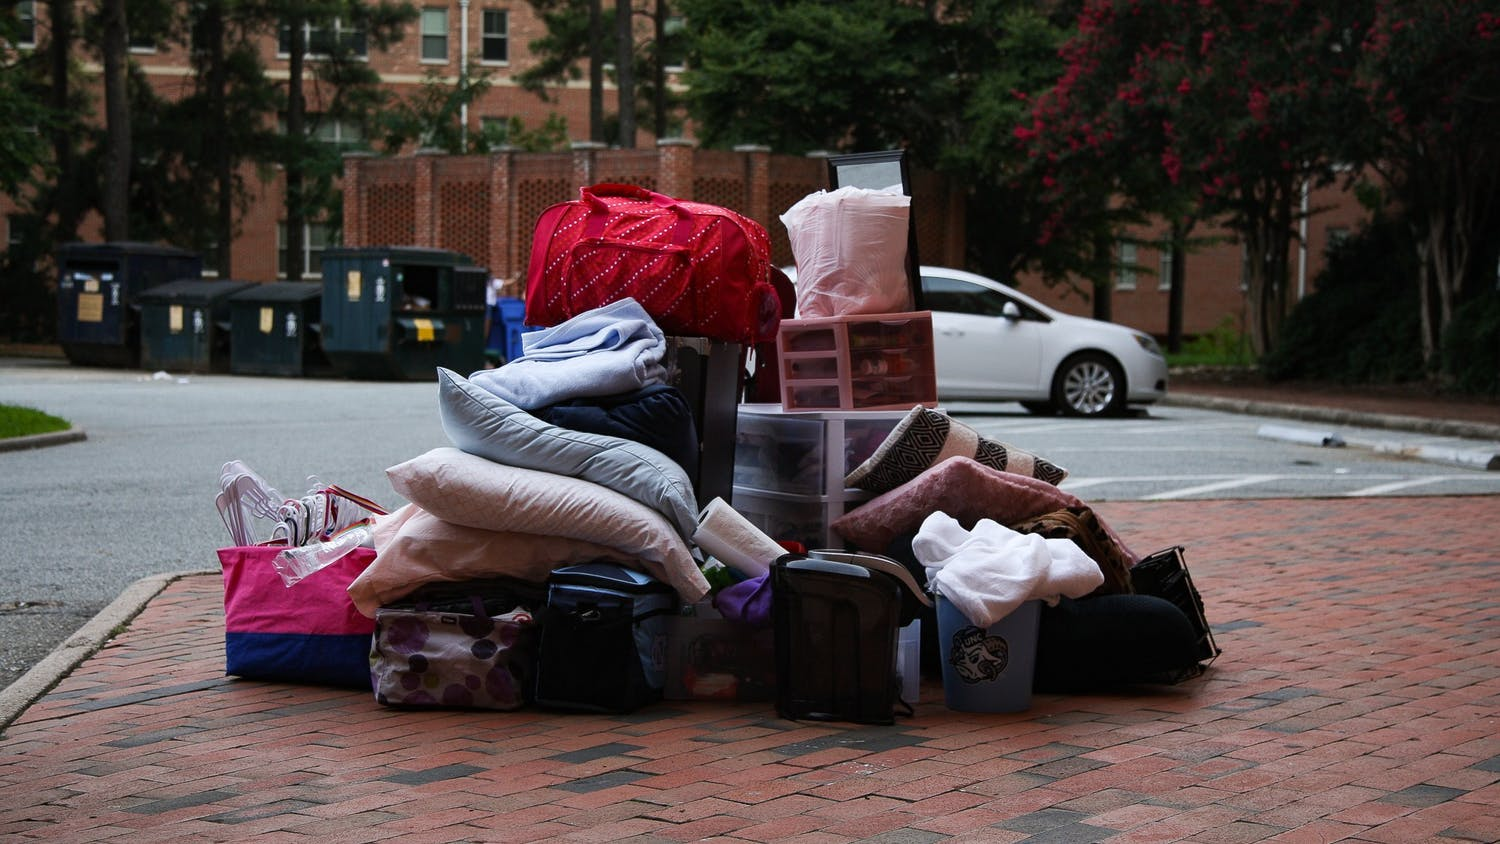 Items from a student's dorm sits in a pile outside Hinton James Residence Hall on Tuesday, Aug. 18, 2020. Students began to move out of various residence halls on campus after the announcement that all undergraduate classes would be moving online for the Fall 2020 semester.